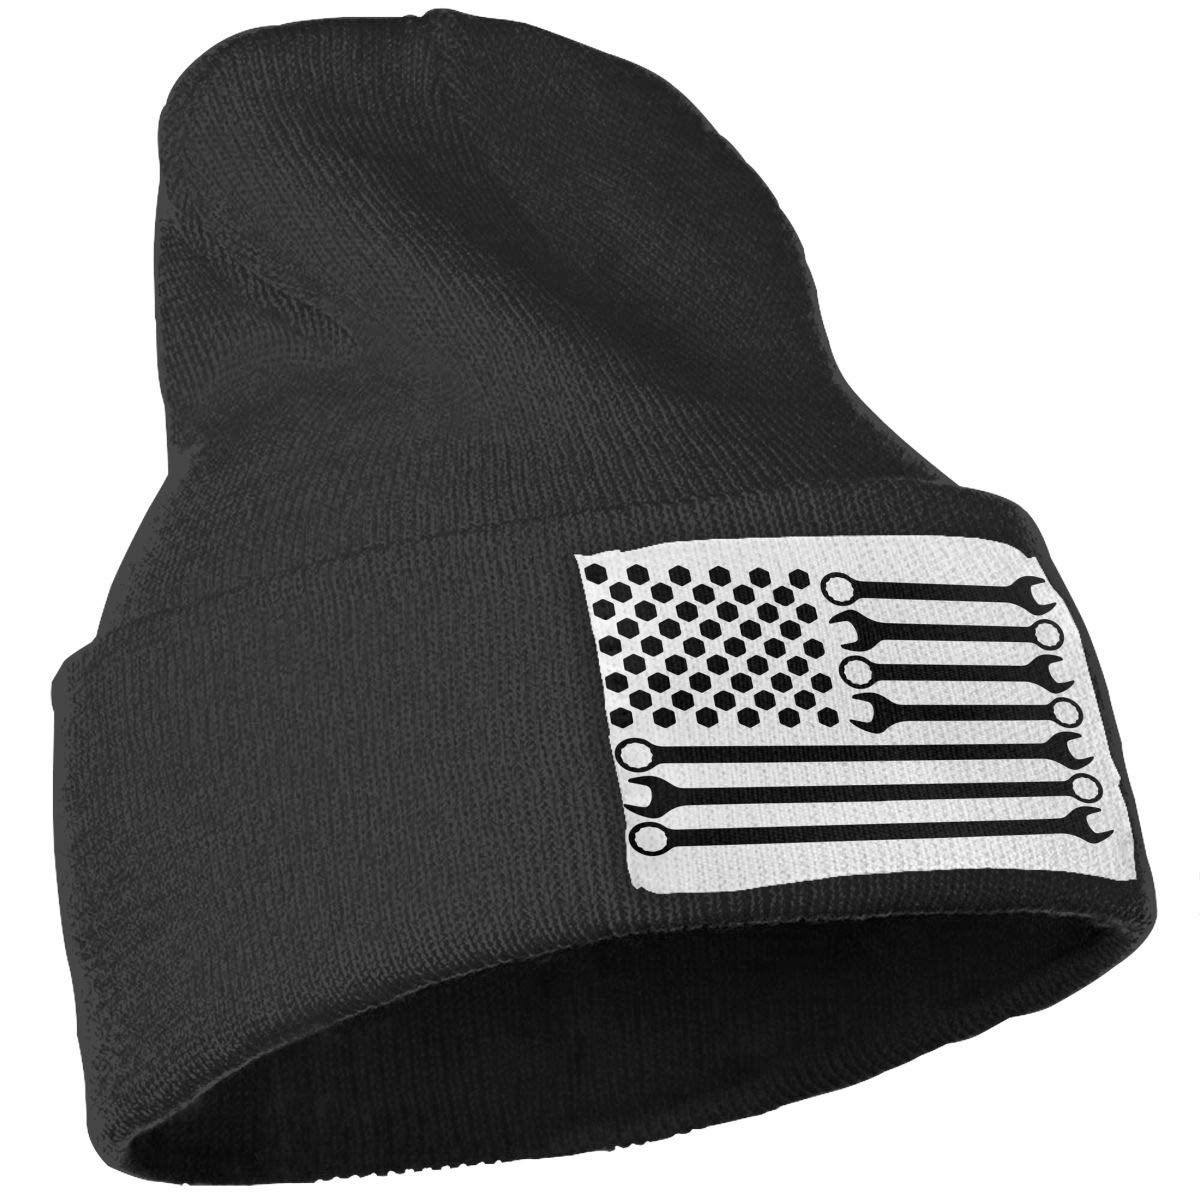 COLLJL-8 Unisex Mechanic DIY Wrench American Flag Outdoor Fashion Knit Beanies Hat Soft Winter Knit Caps